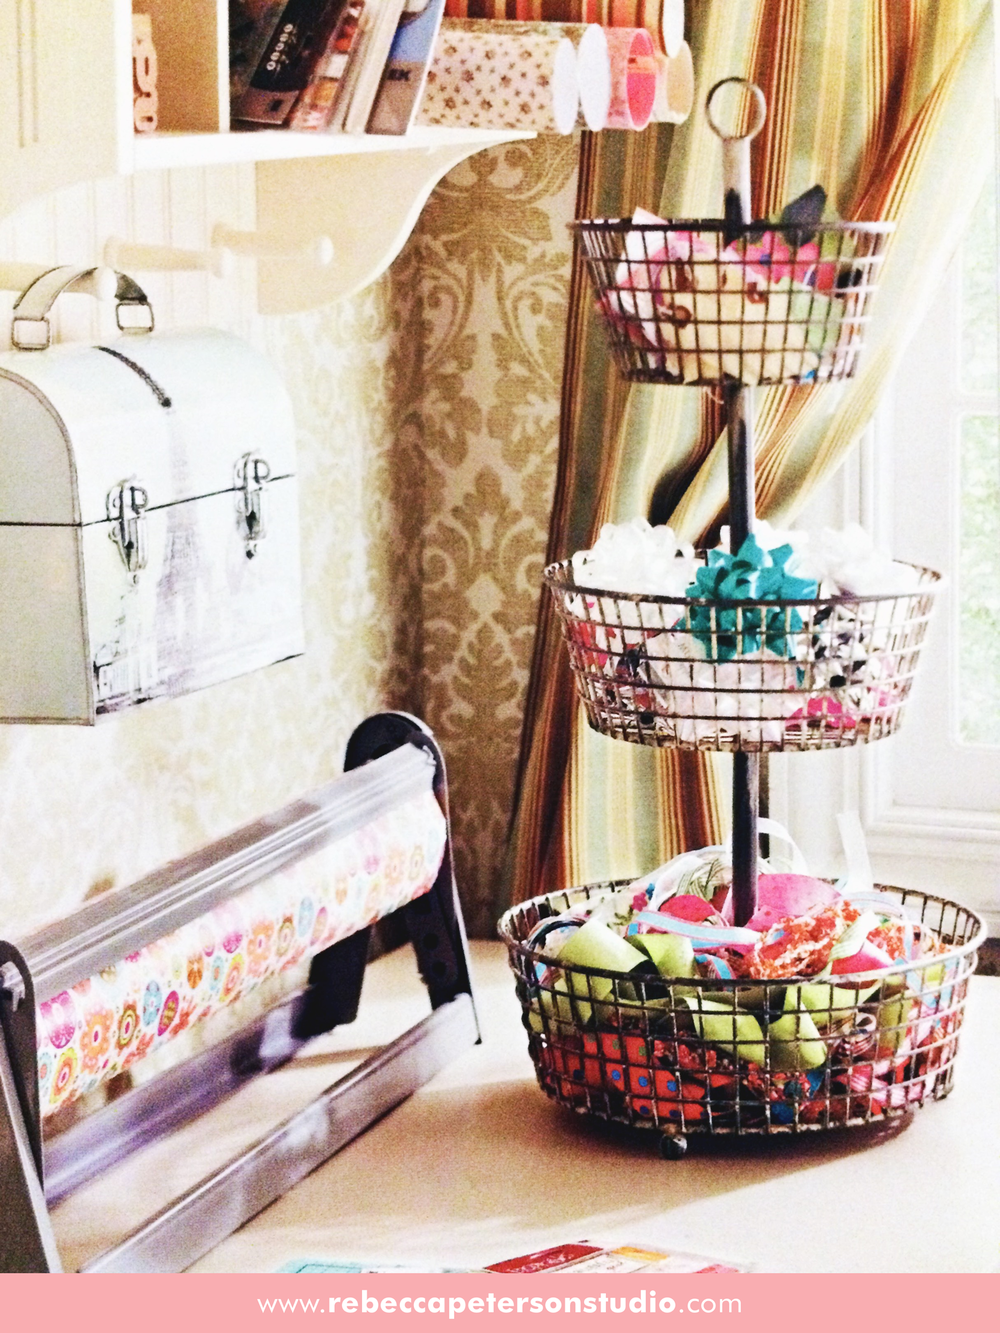 I love using old things for new purposes. This fruit tray works perfectly as a craft organizer.